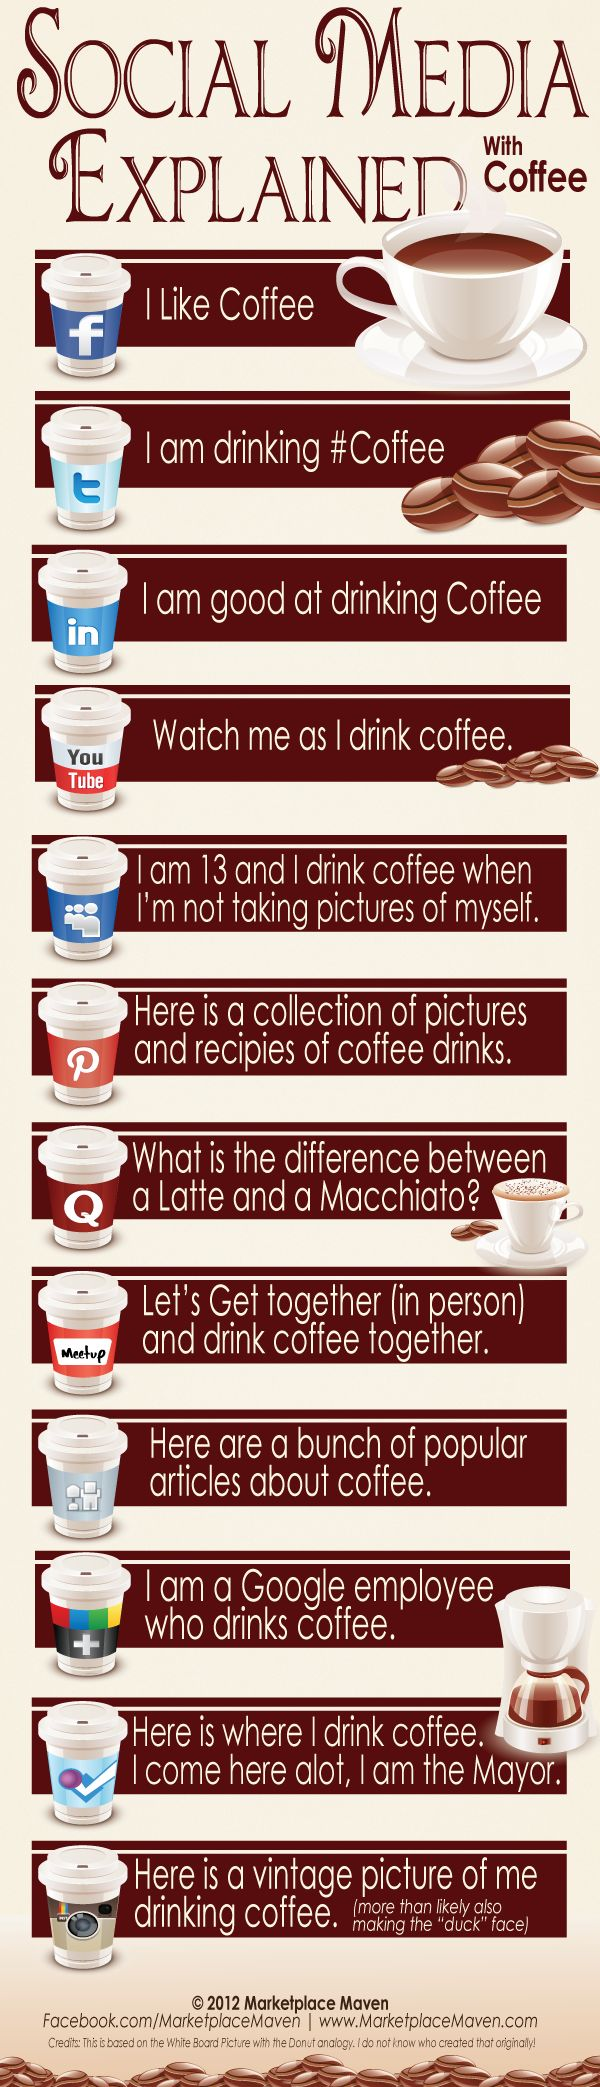 Social Media explained with Coffee Coffee is one of those incredible pleasures in my life that I just can't do without.